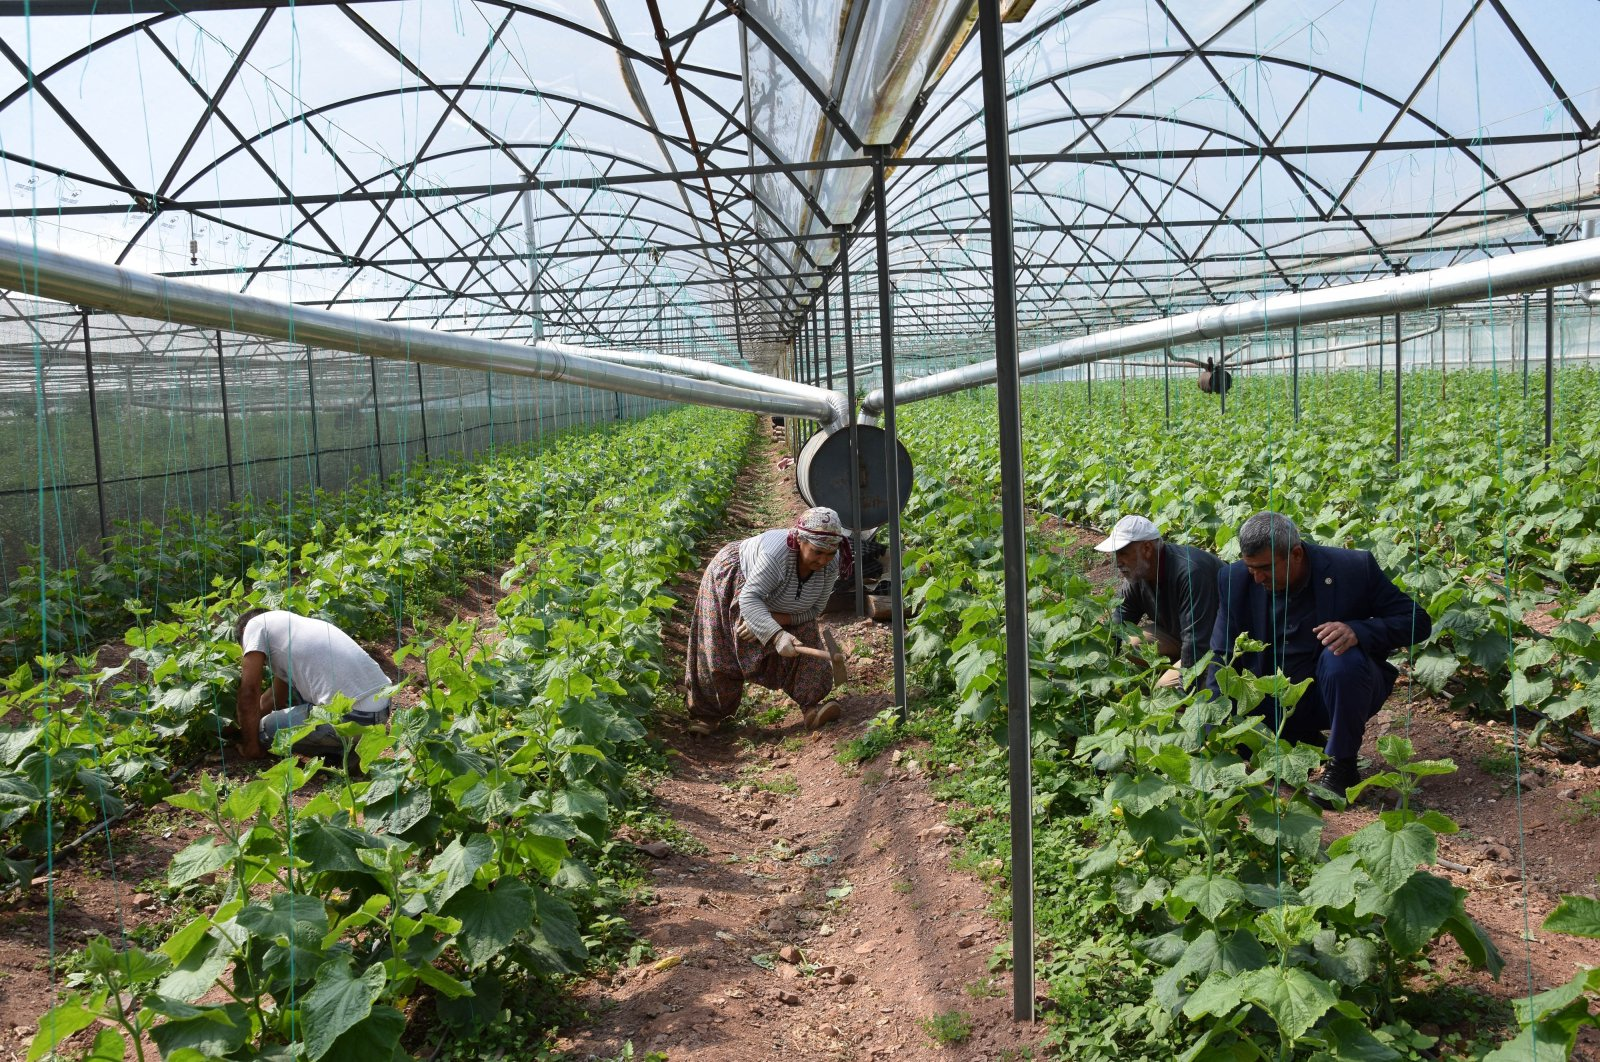 Farmers working at tomato plants in a greenhouse in Antalya, southern Turkey, on Wednesday, March 25, 2020. (IHA Photo)